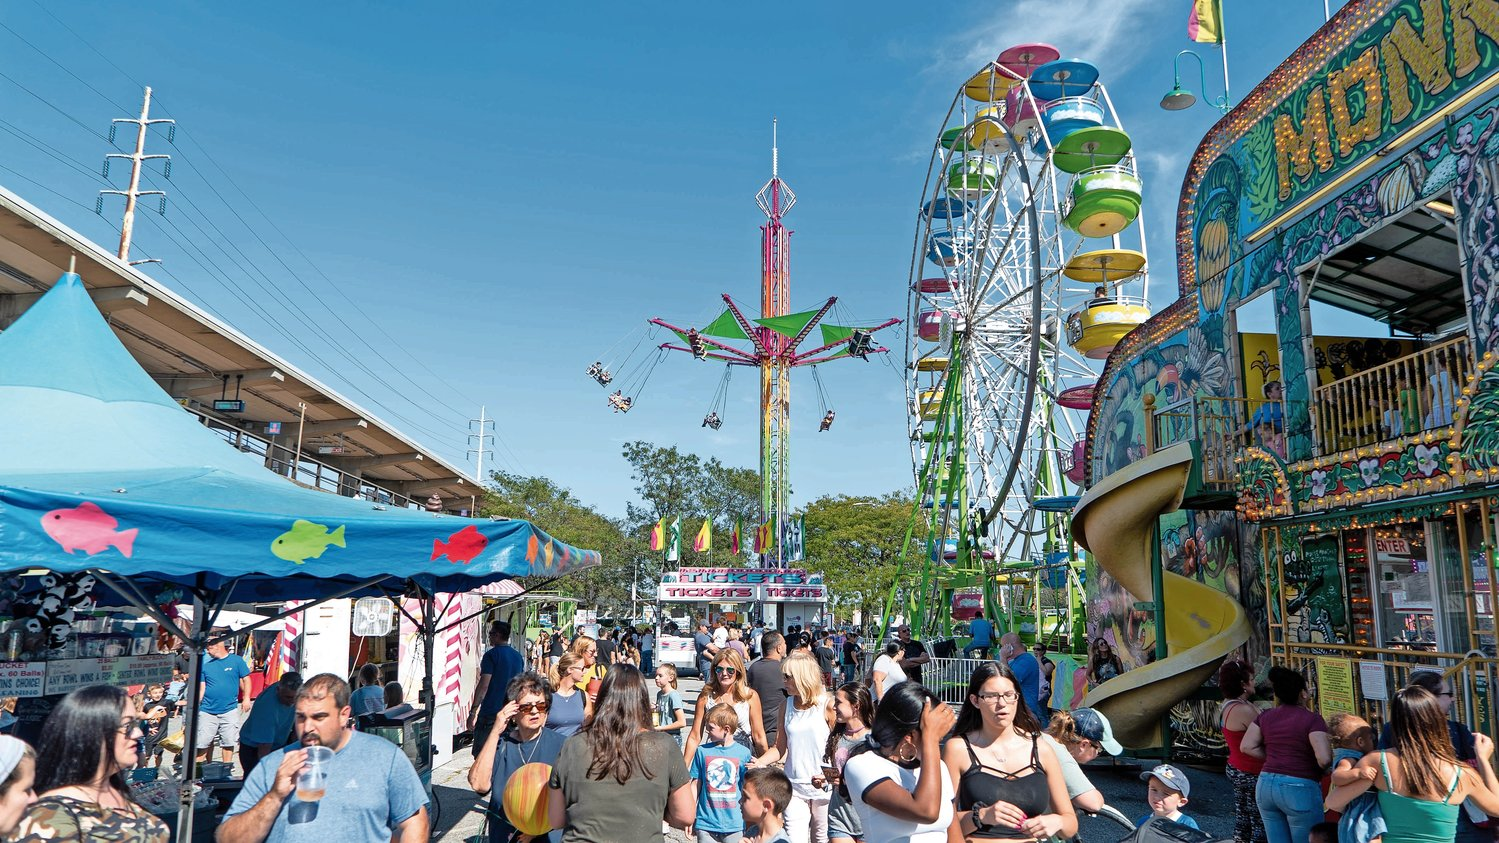 The Chamber of Commerce of the Bellmores, which hosts the annual street fair, may opt to hold a shopper's paradise in place of the festival, permit permitting.